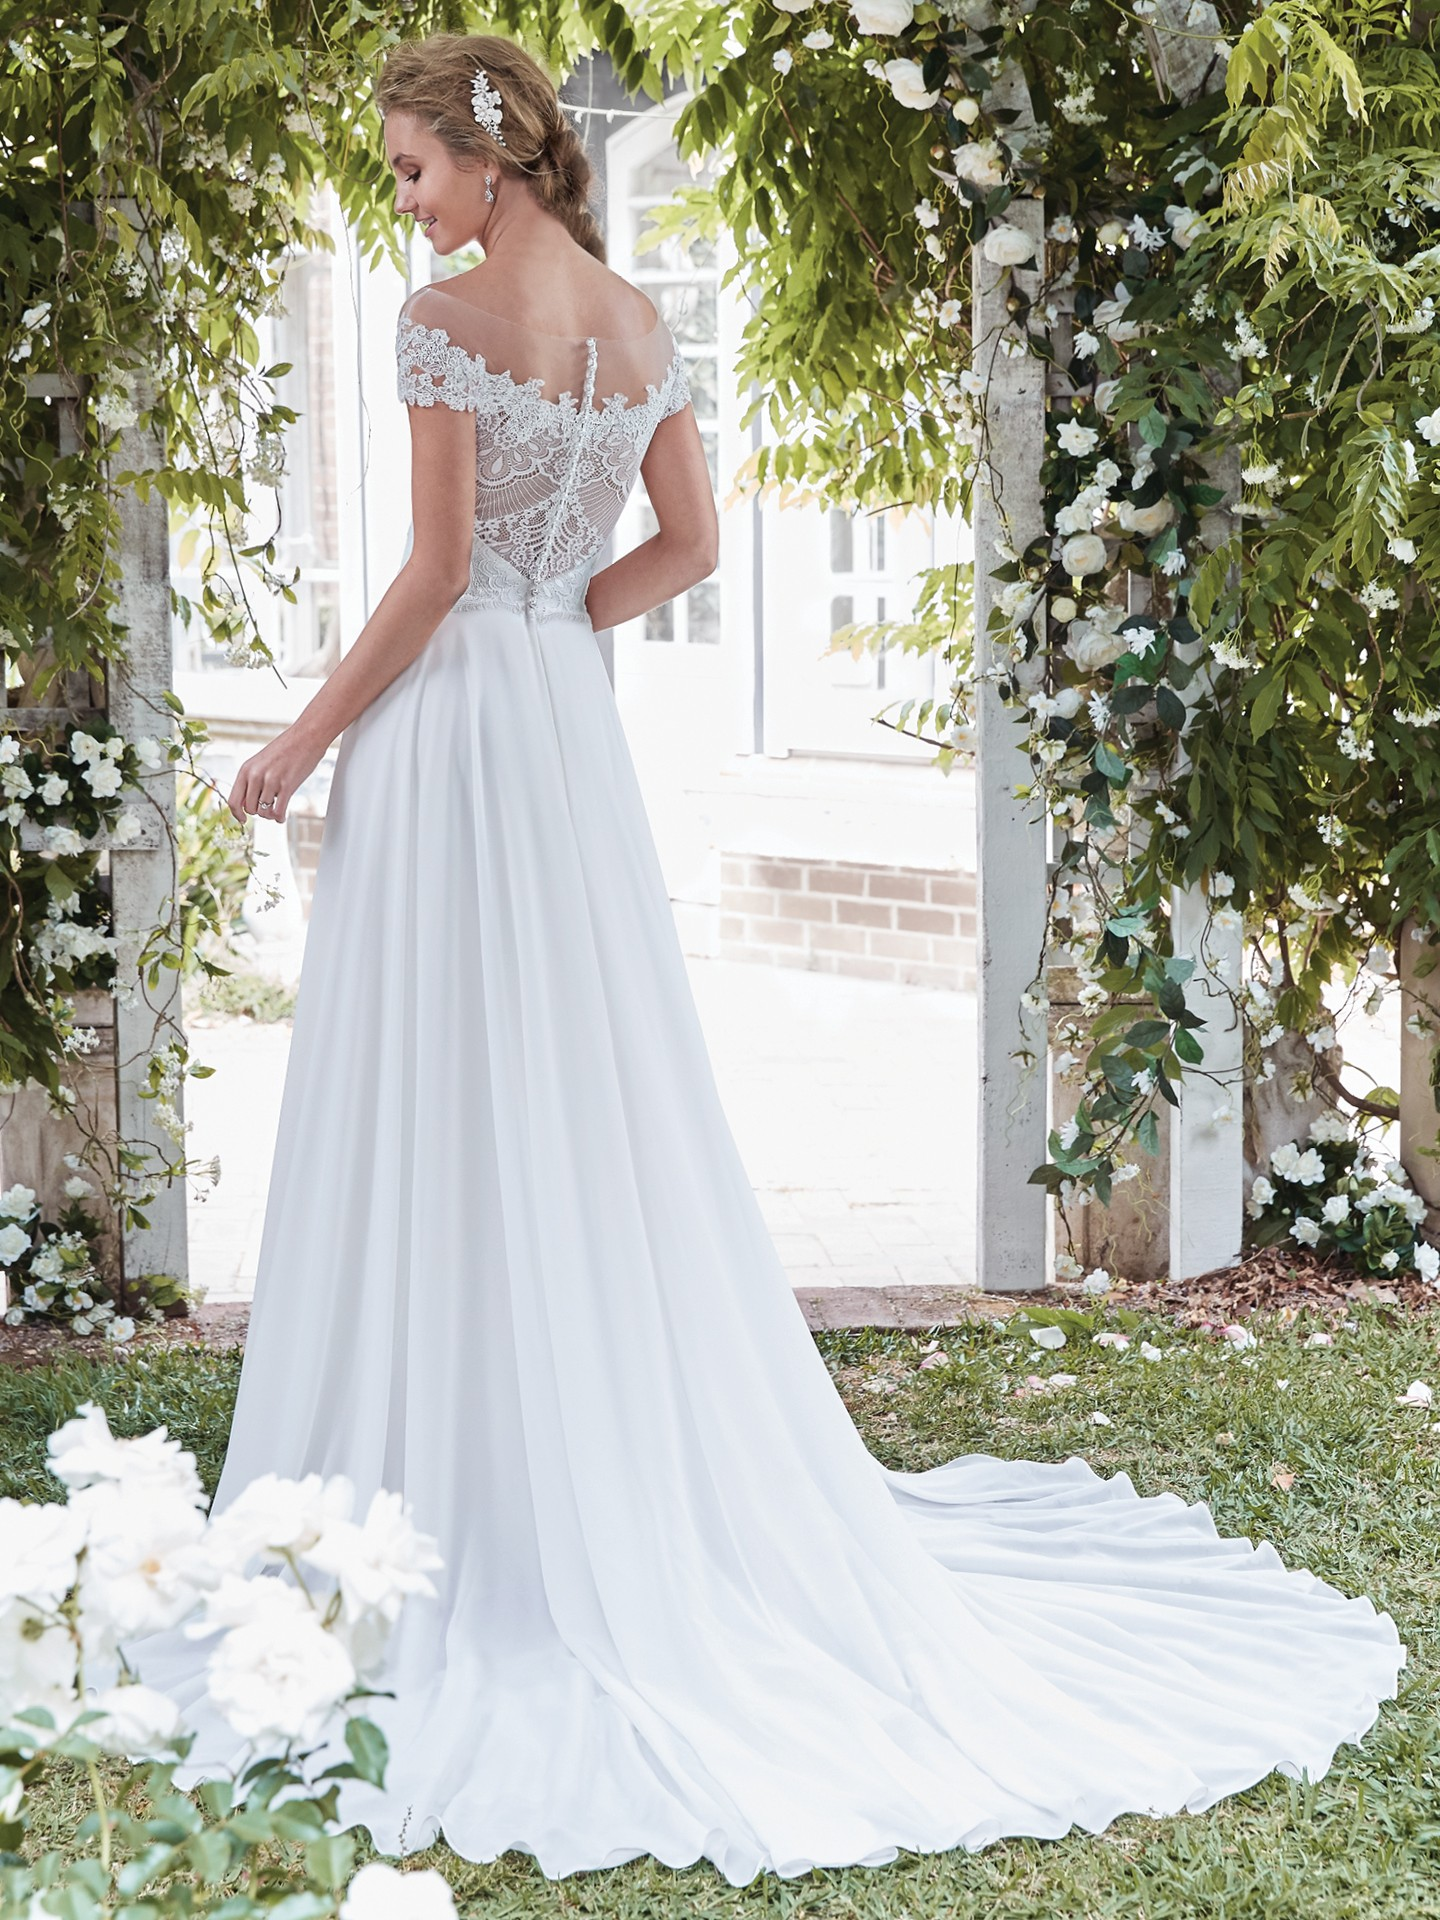 Beatrice by Rebecca Ingram. This vintage-inspired wedding dress features a Verona Chiffon sheath skirt, an elegant lace bodice, and sheer lace comprising the illusion off-the-shoulder over sweetheart neckline and illusion open back. Finished with pearl buttons over zipper closure.